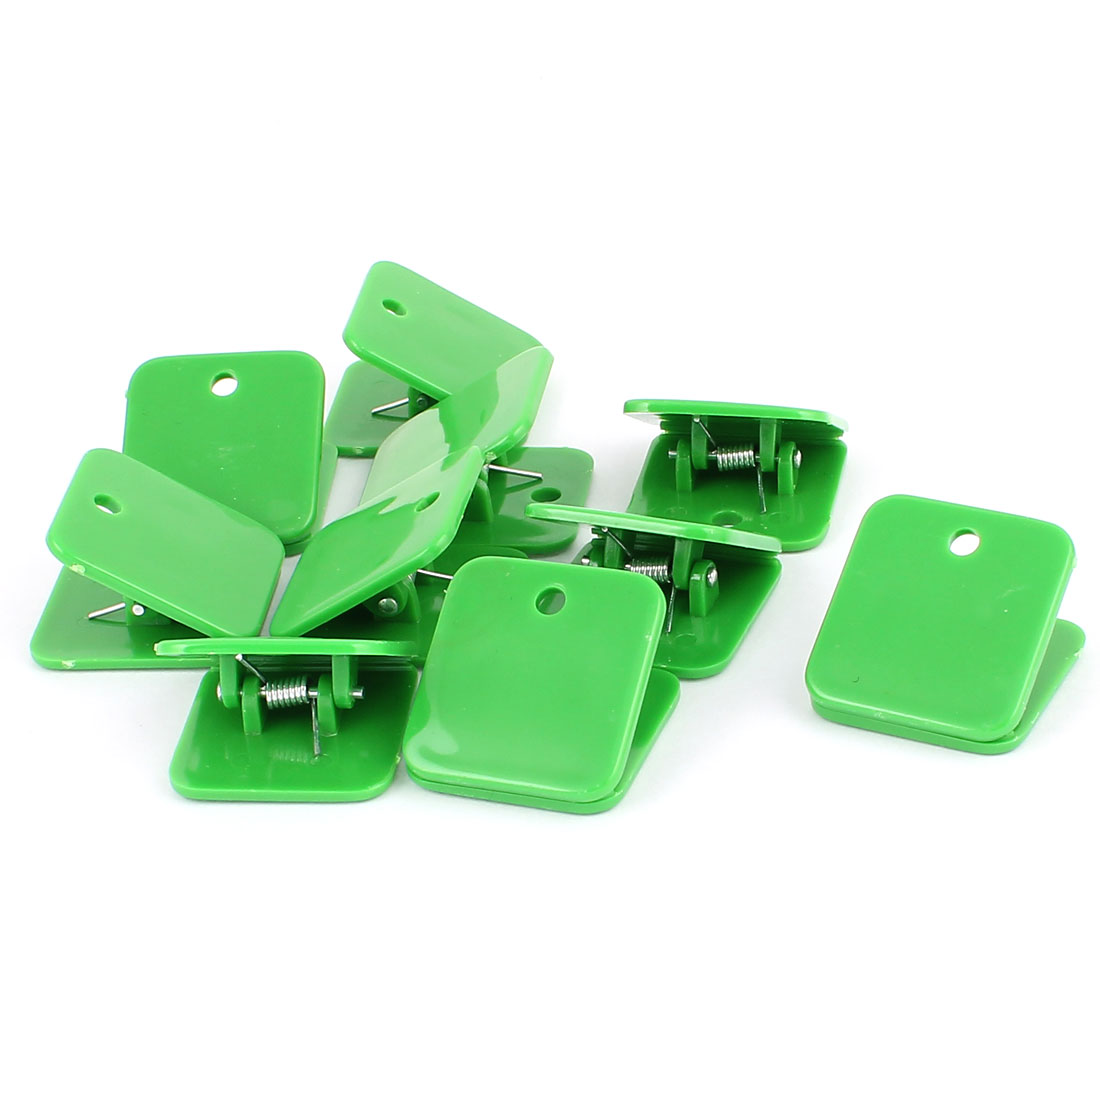 Green Plastic Square Spring Loaded Paper Document Memo Note Stationery Binder Clip 10pcs